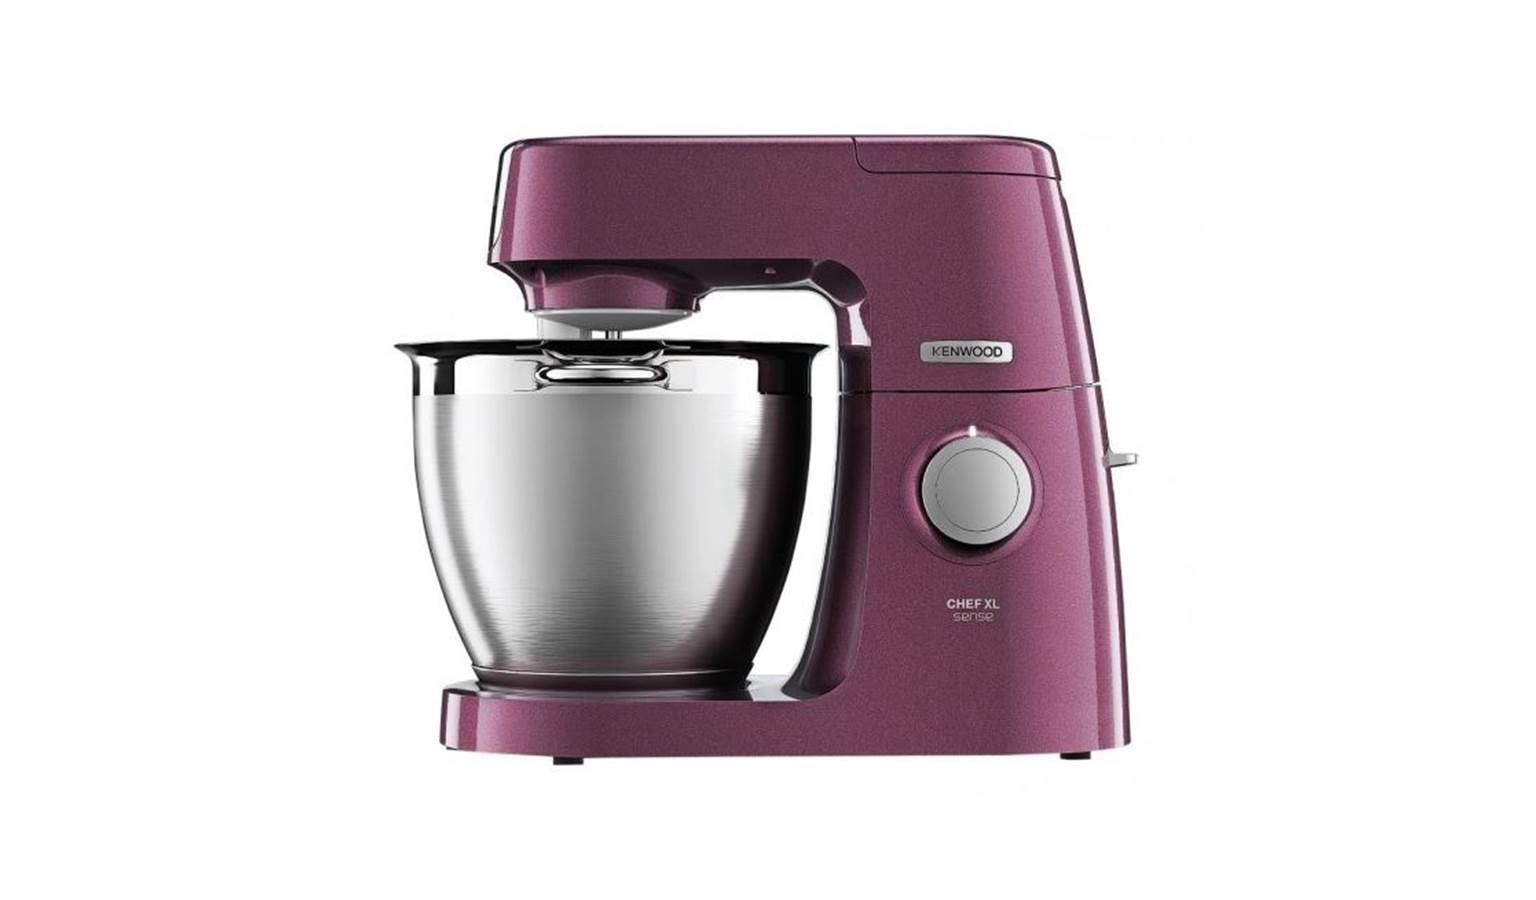 Kenwood KQL6300 Chef XL Sense Kitchen Machine - Violet